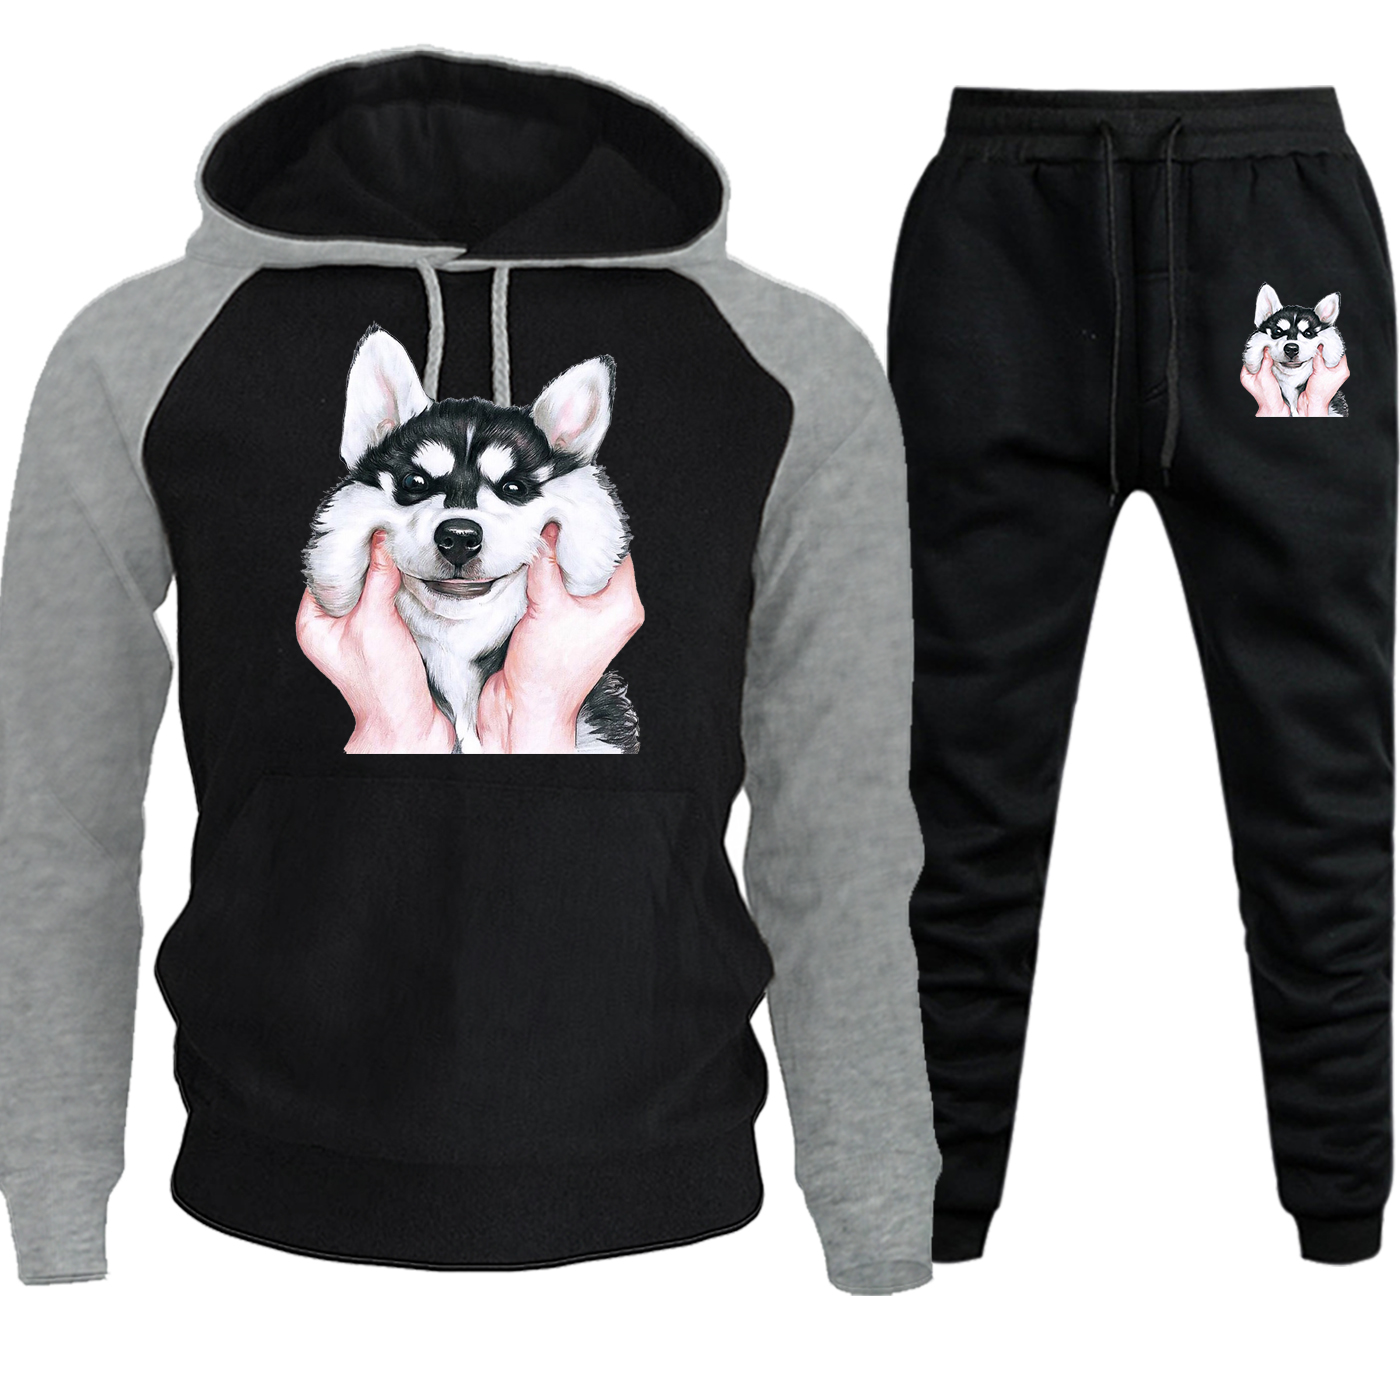 Men Hooded Raglan Streetwear Autumn Winter 2019 Husky Print Suit Male Casual Pullover Fleece Harajuku Hoodie+Pants 2 Piece Set